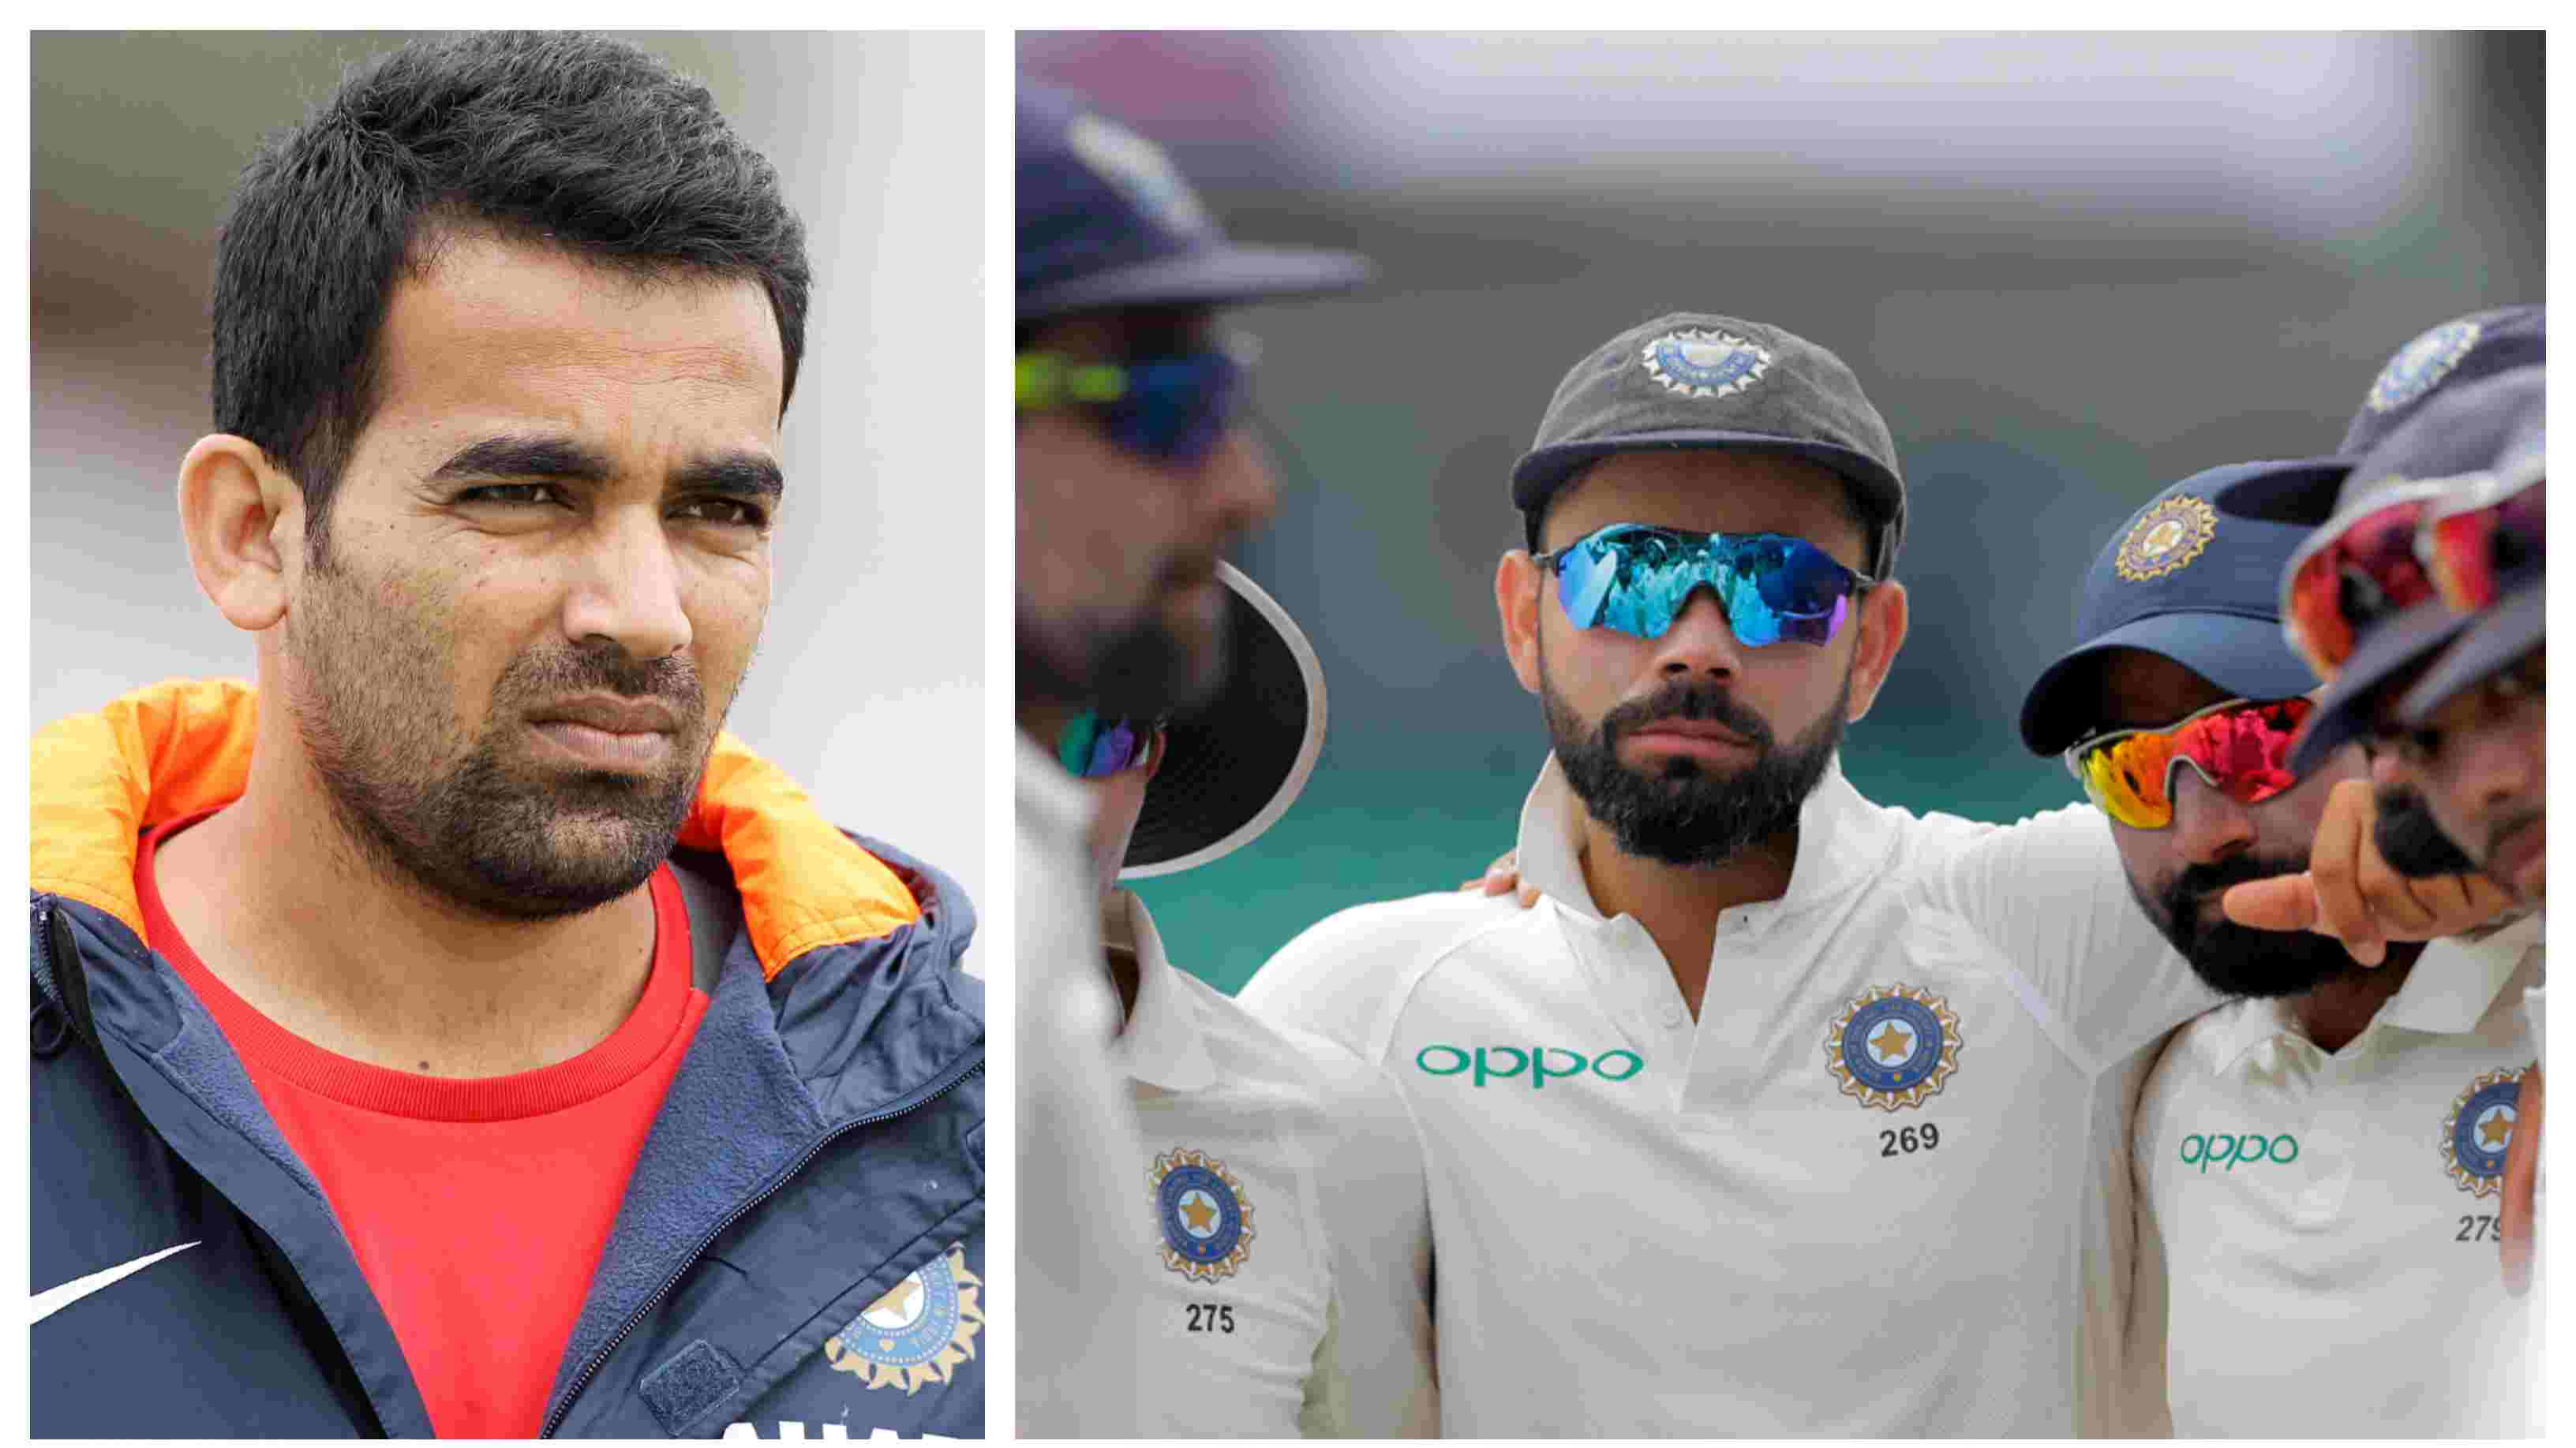 ENG v IND 2018: Hot conditions in England might tempt India to play two spinners, says Zaheer Khan